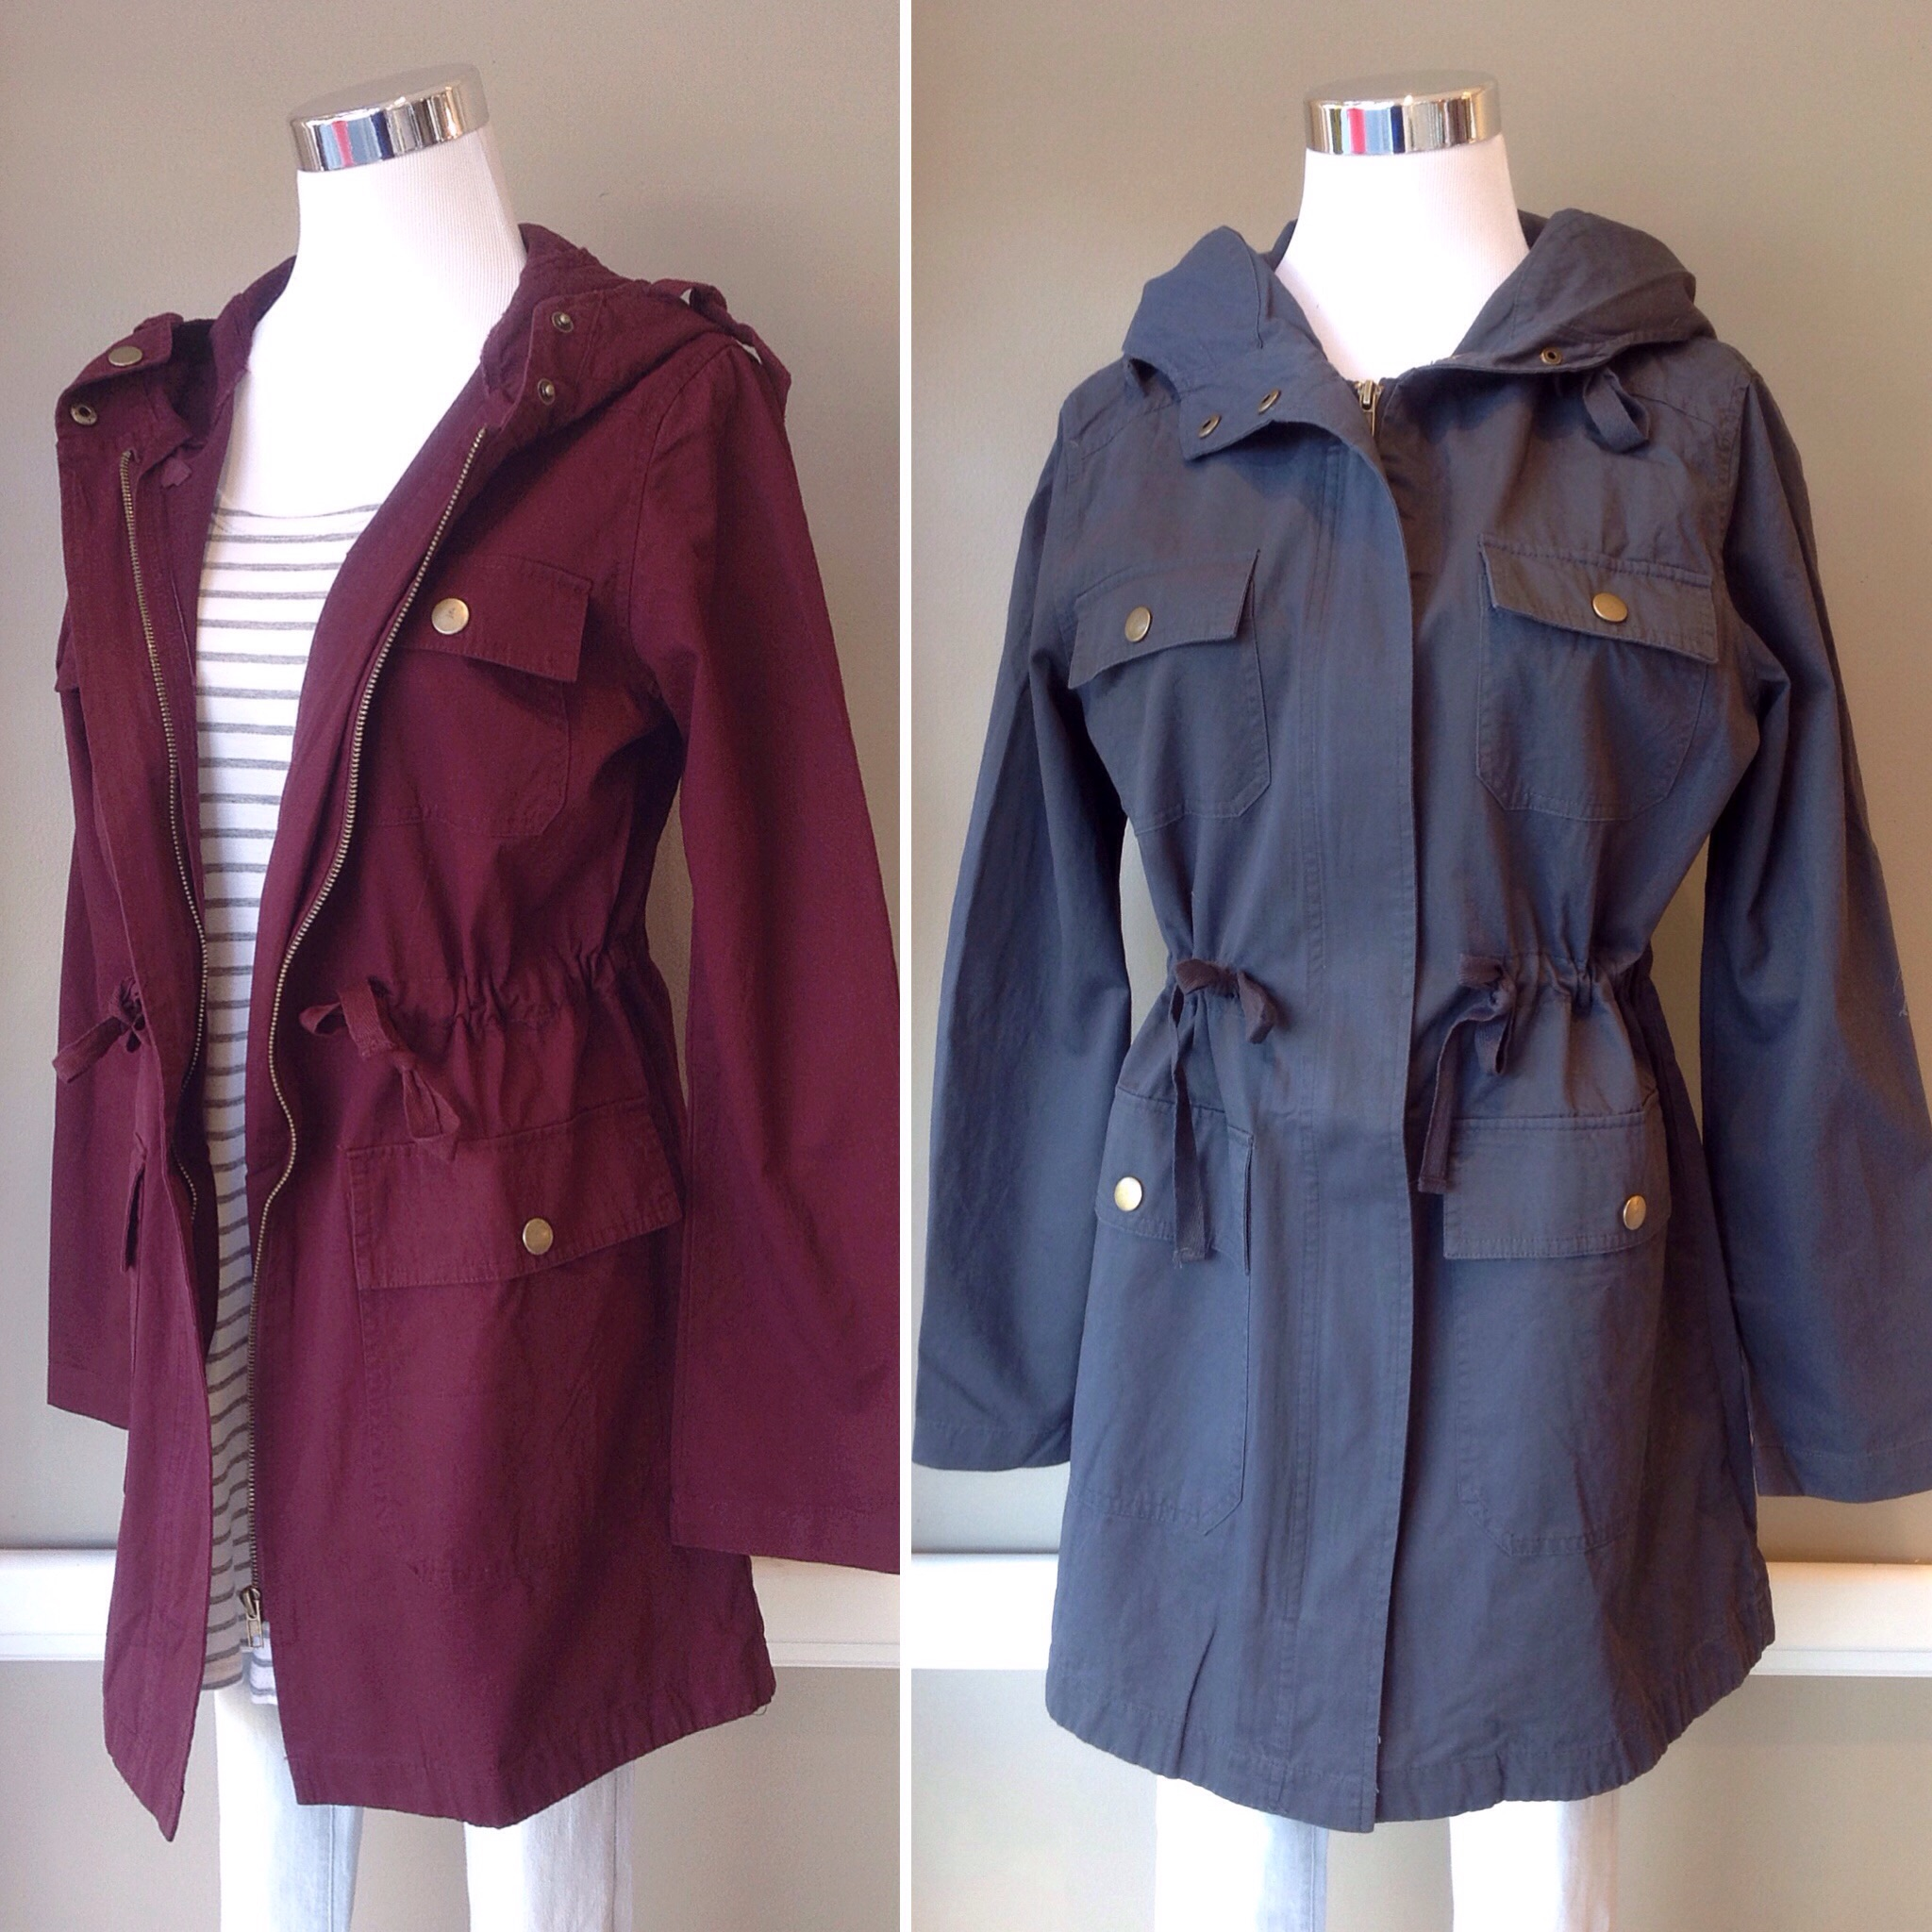 Light cotton twill utility jacket with drawstring waist, $45. Available in burgundy and charcoal.